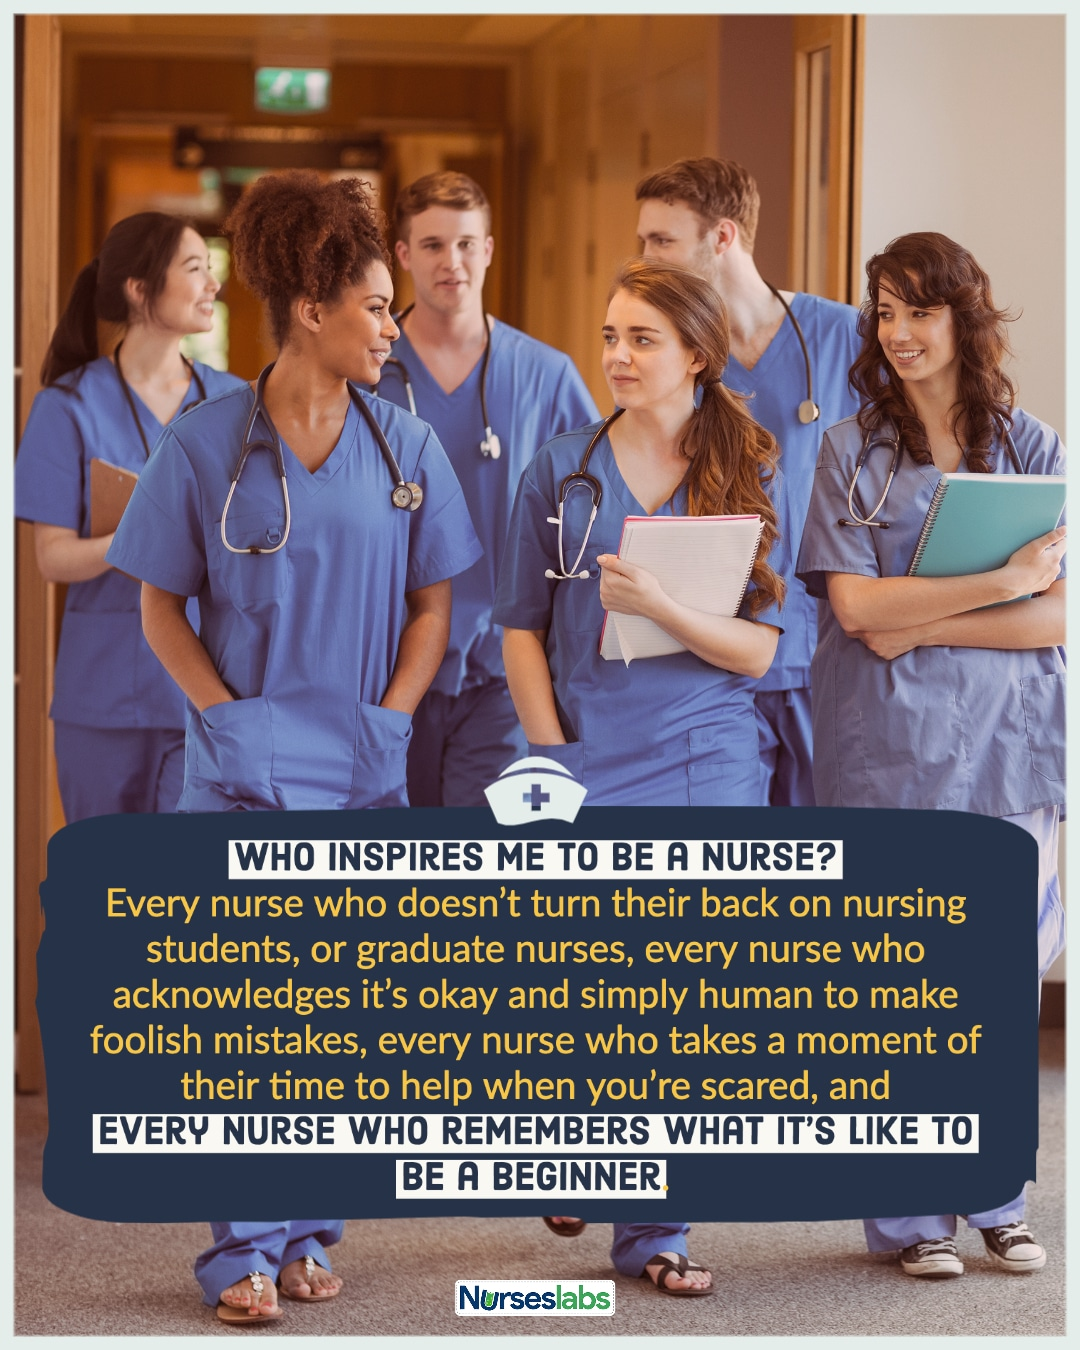 """""""Who inspires me to be a nurse? Every nurse who doesn't turn their back on nursing students, or graduate nurses, every nurse who acknowledges it's okay and simply human to make foolish mistakes, every nurse who takes a moment of their time to help when you're scared, and every nurse who remembers what it's like to be a beginner."""" – Anonymous Nurse"""